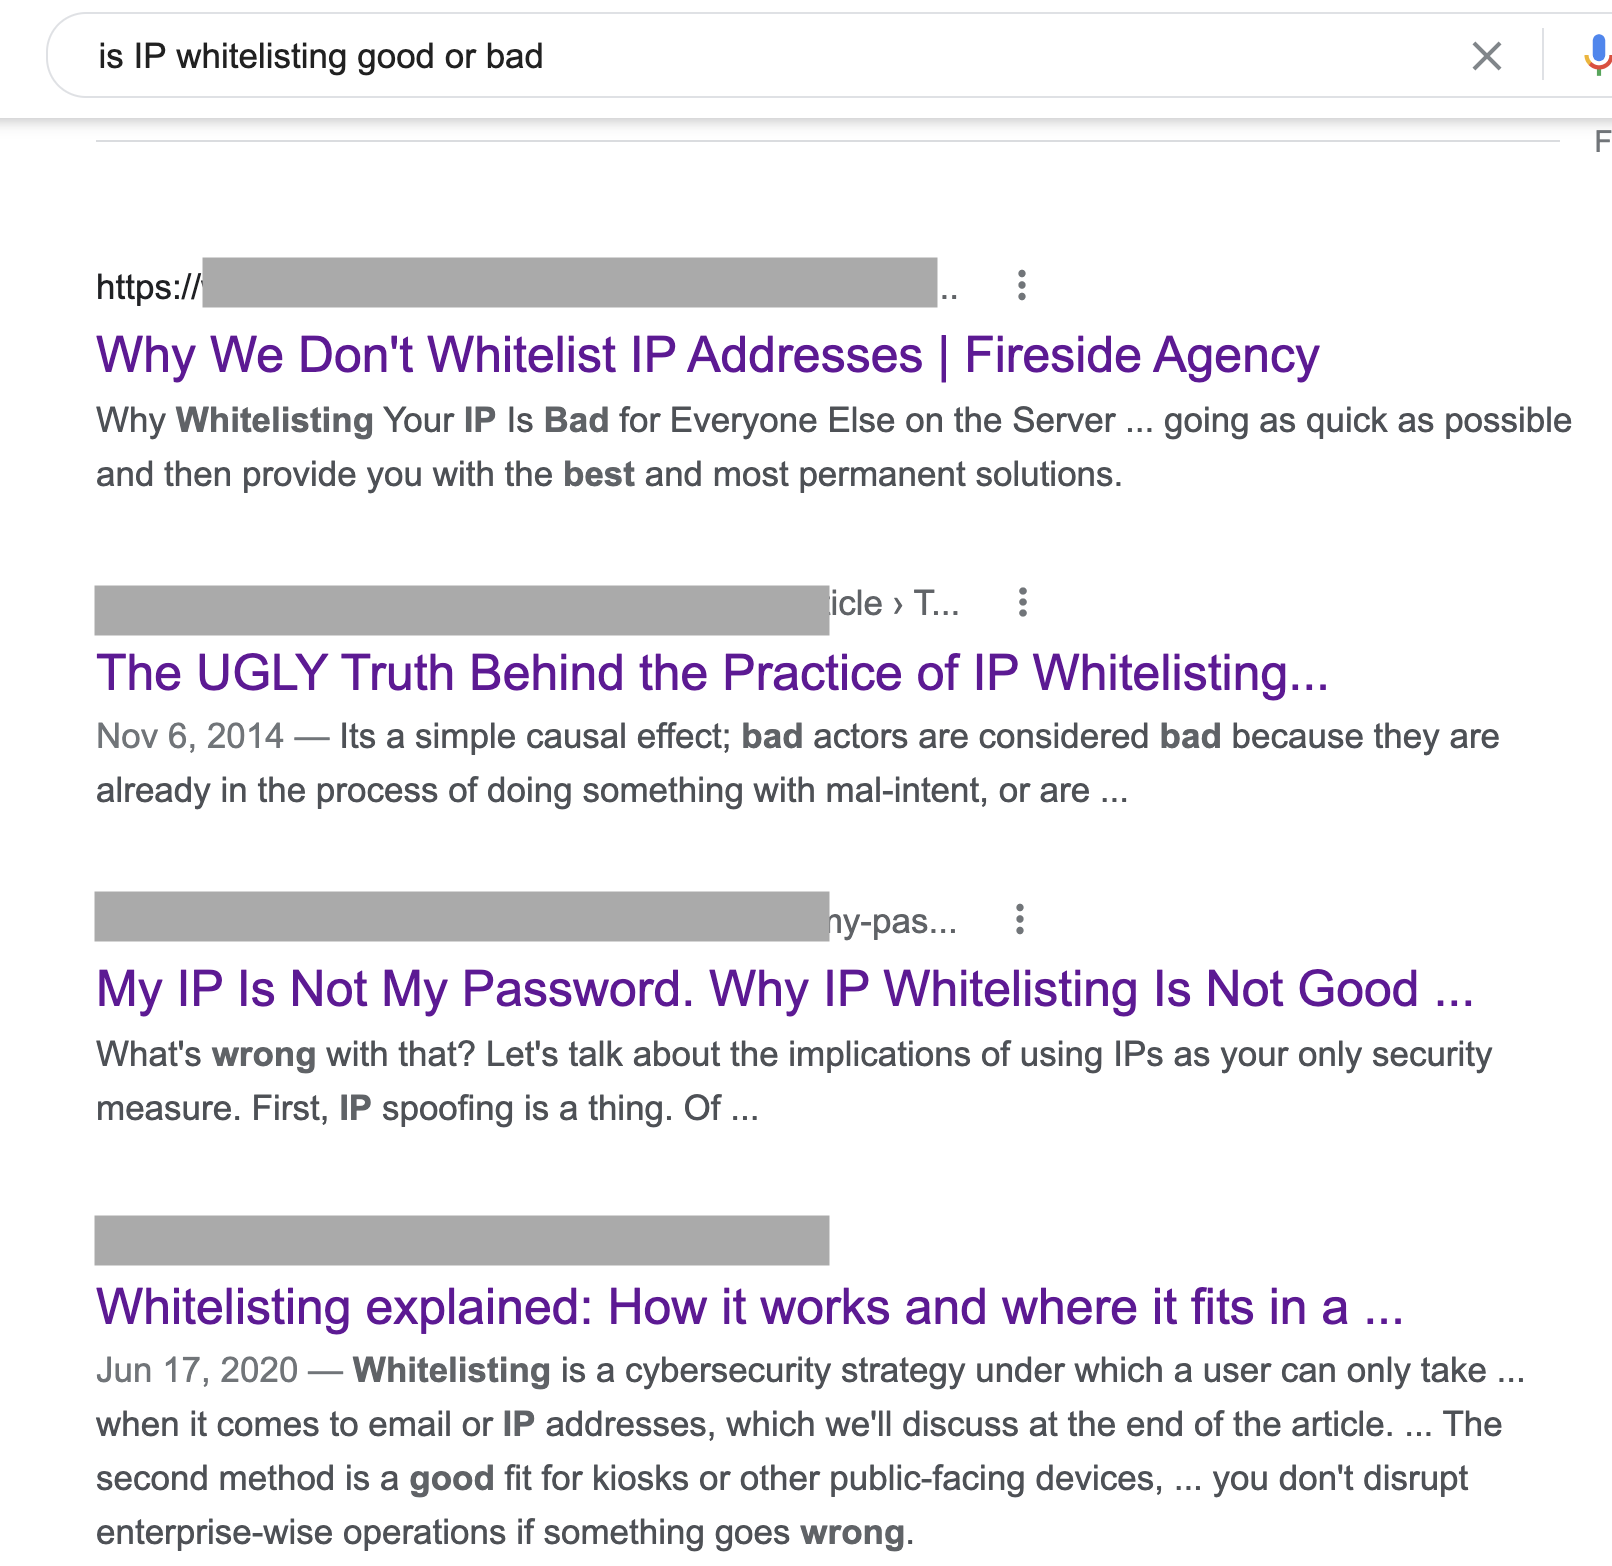 """Googel search for """"Is IP whitelisting good or bad"""""""